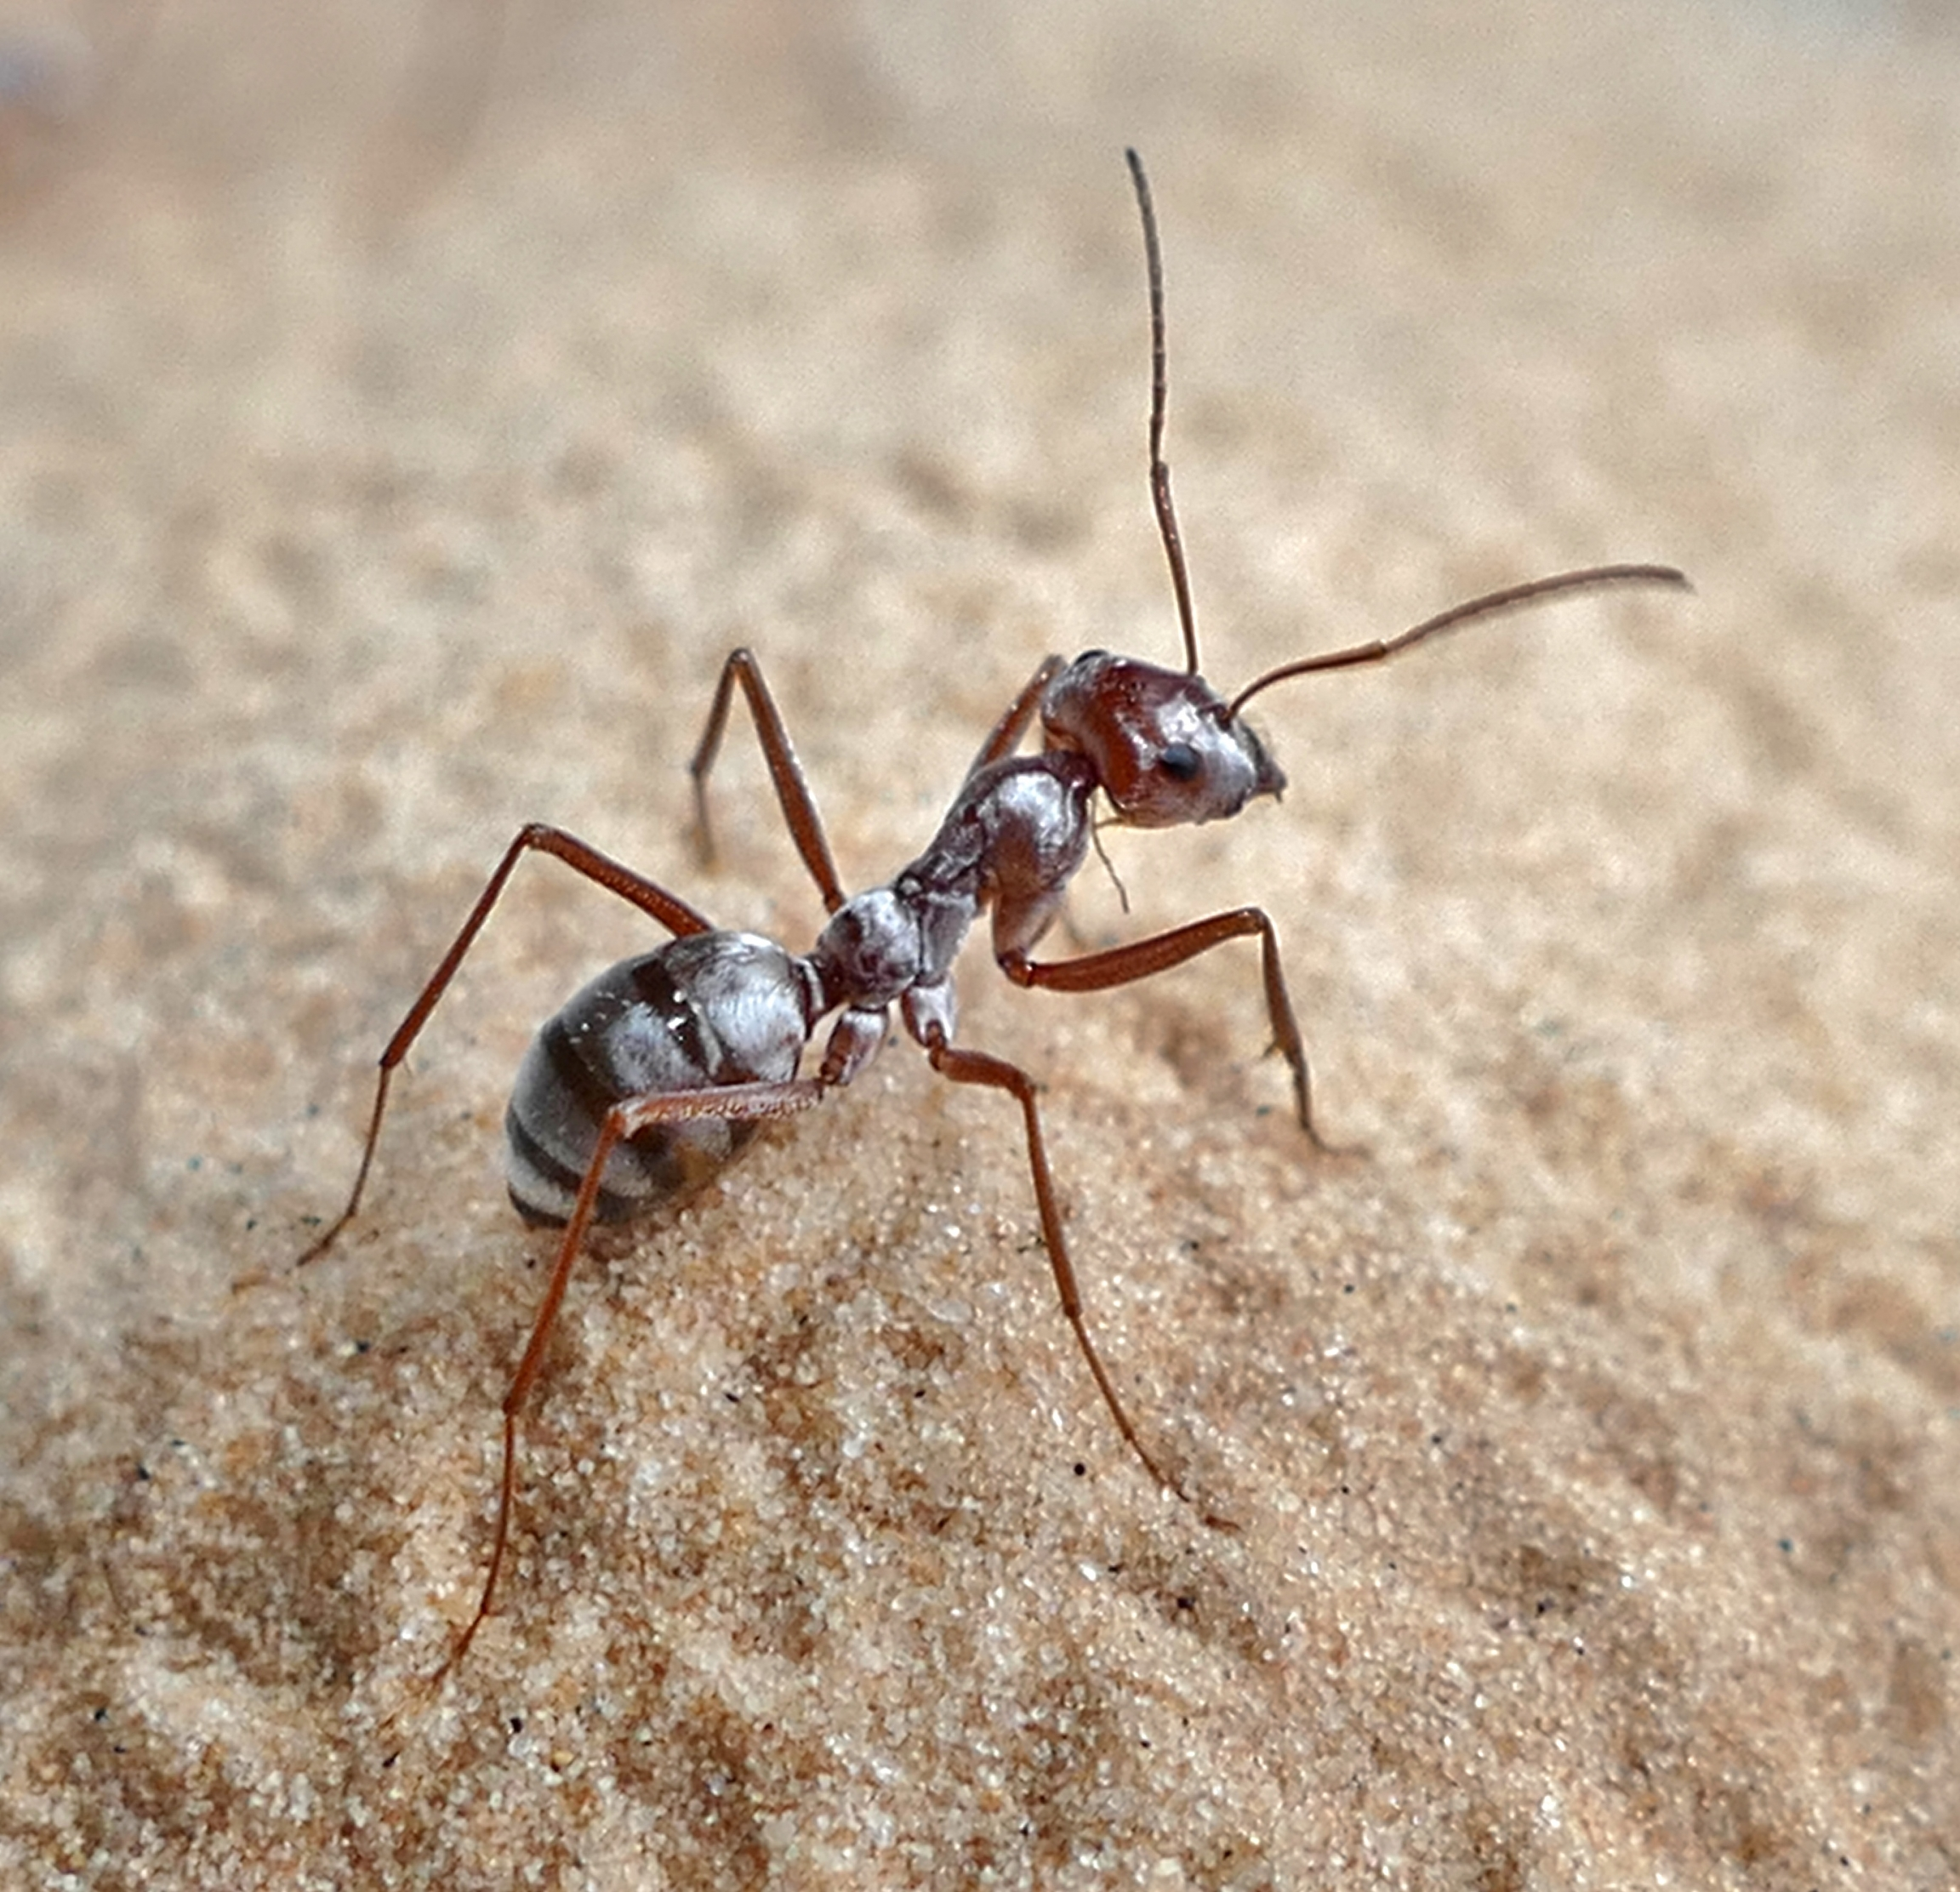 Up close image of ant with 6 legs